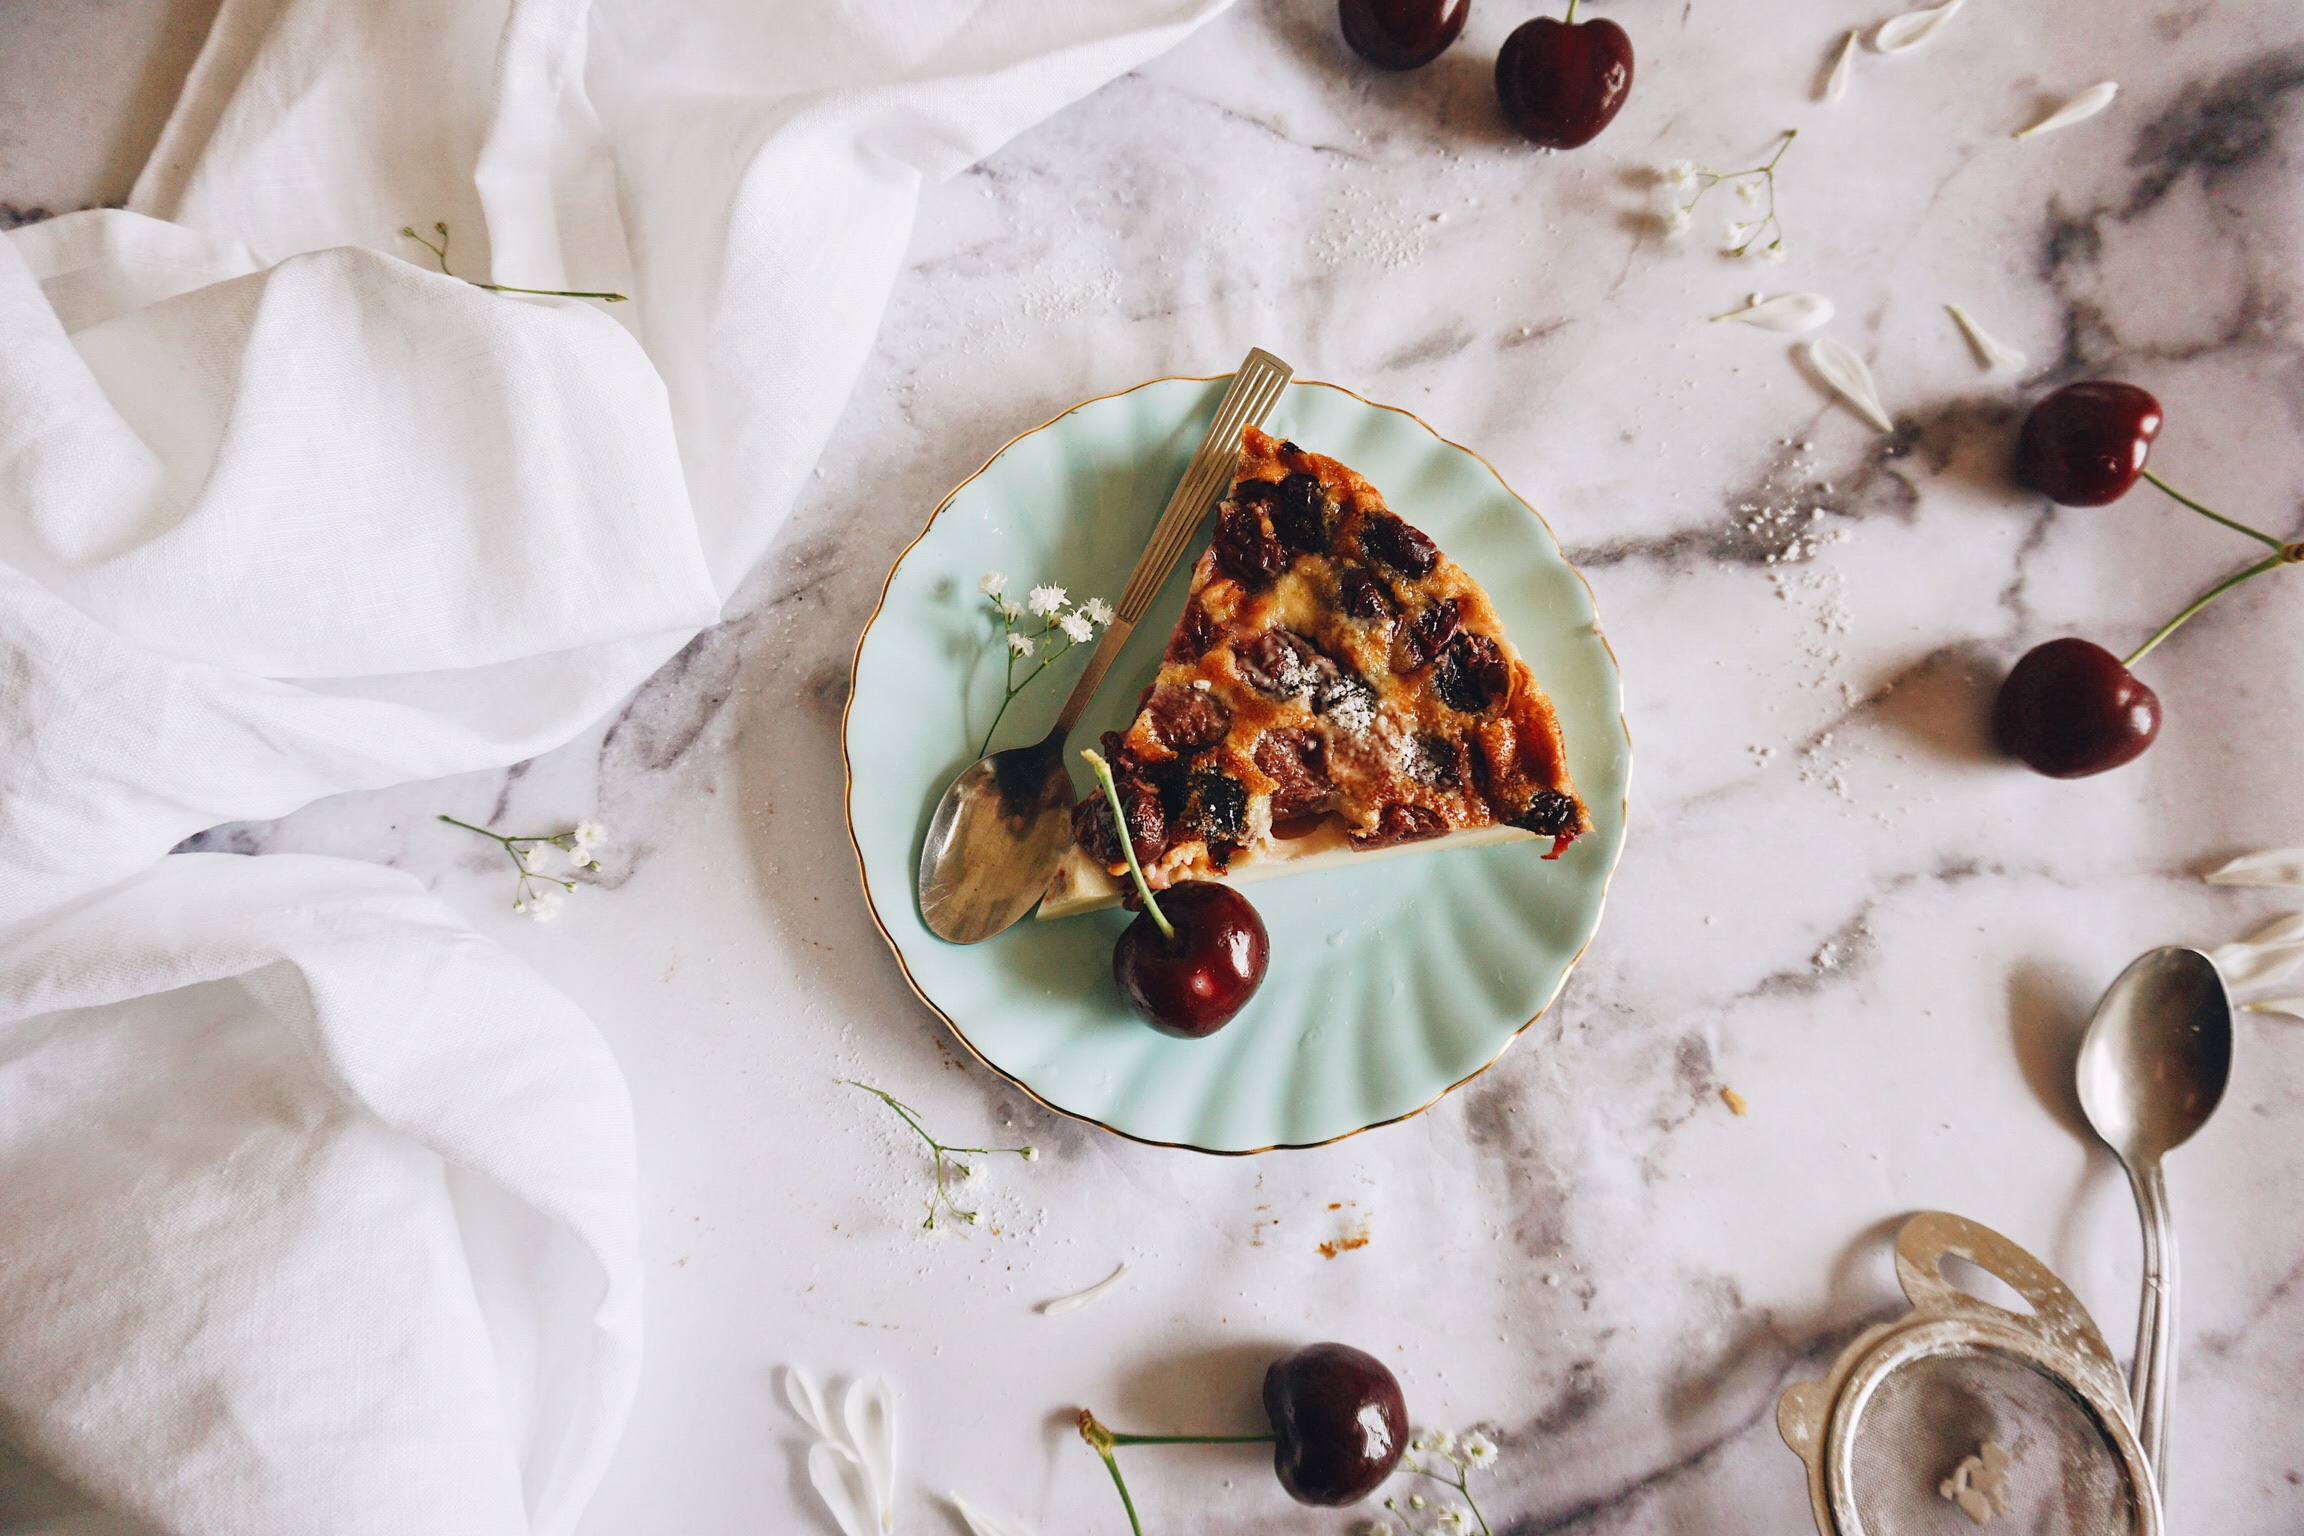 Wedge of French cherry flan tart known as clafoutis surrounded by cherries flowers dusted with icing sugar